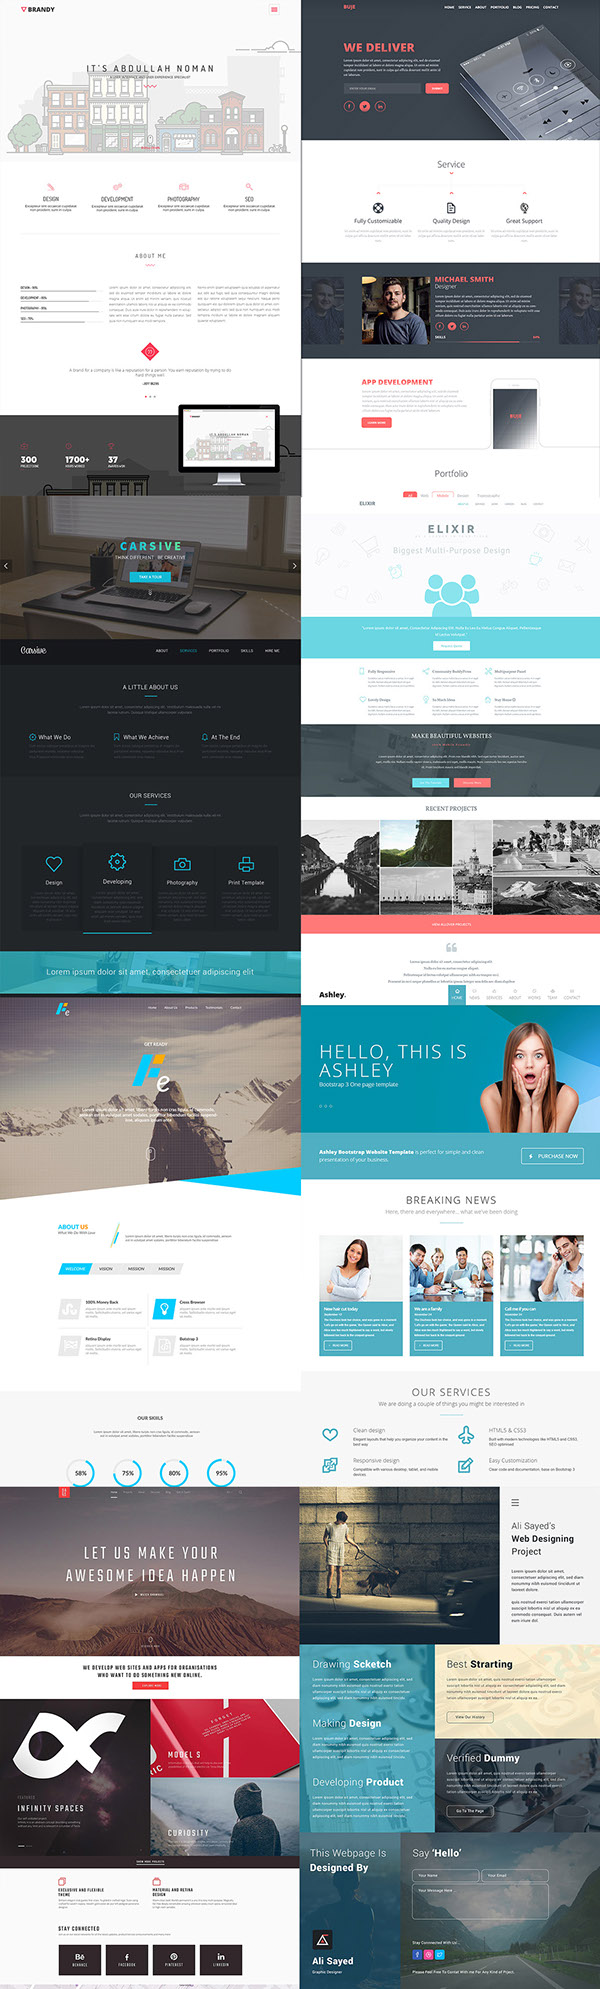 30 Amazing Free PSD Website Templates – January 2015 on Behance